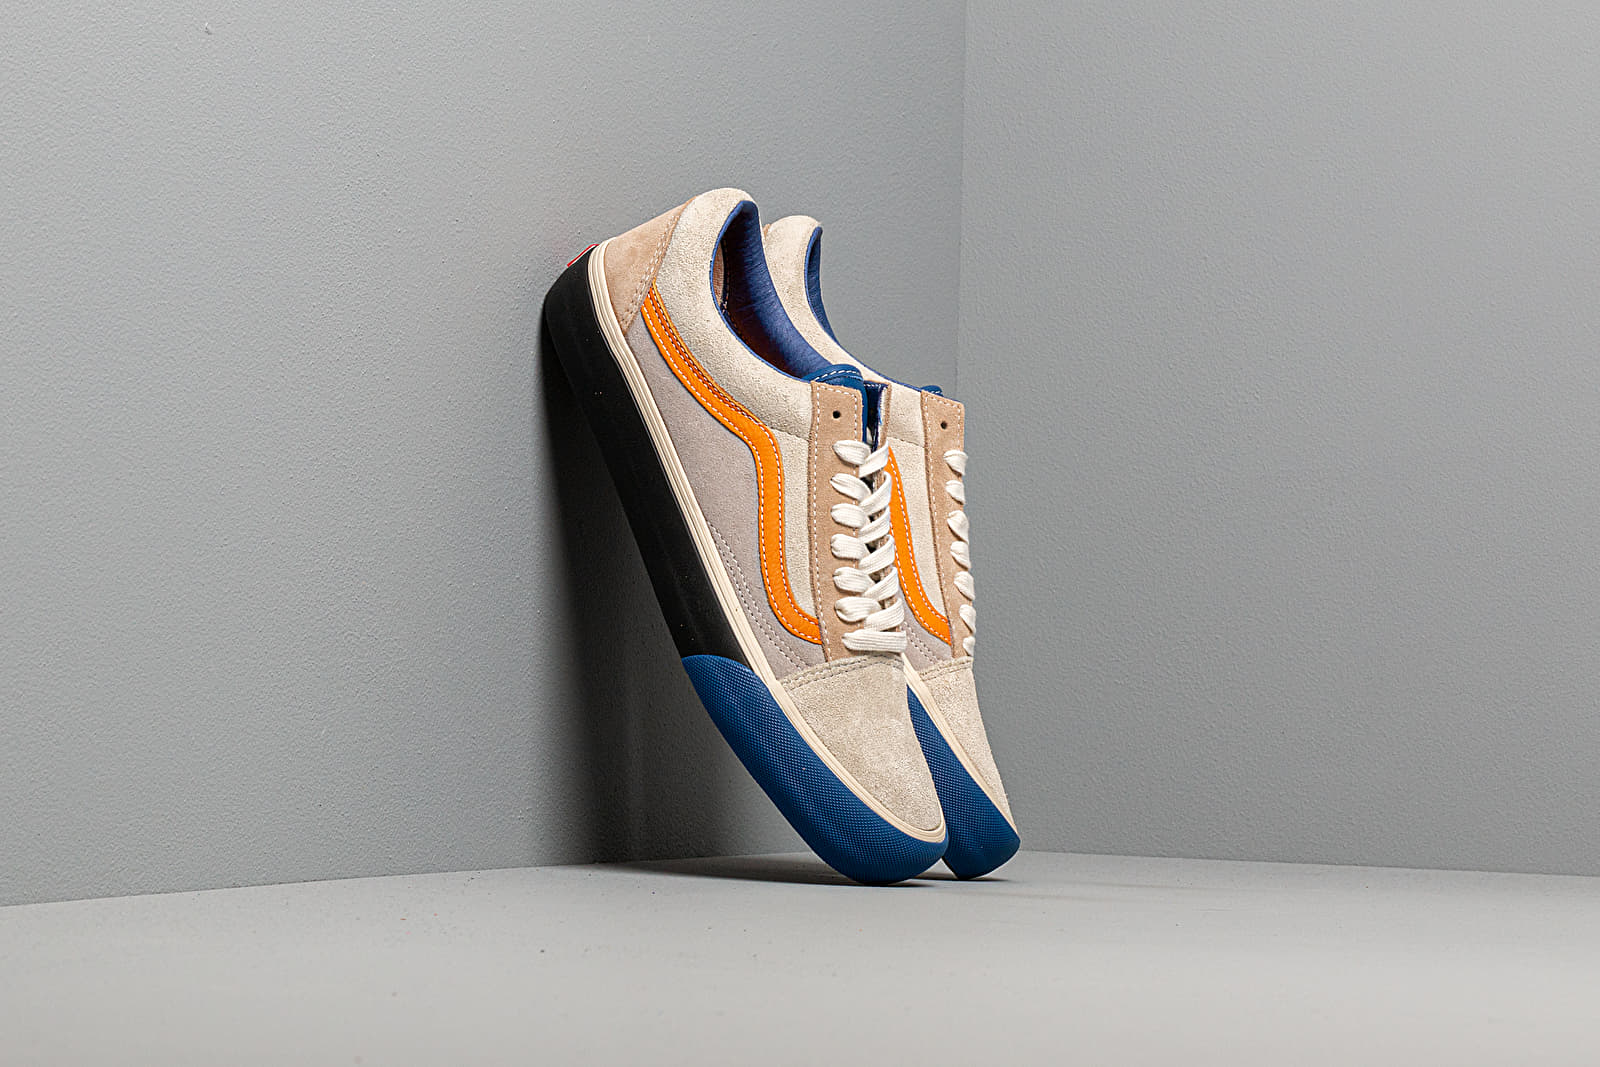 Vans Old Skool VLT LX (Suede/ Leather)